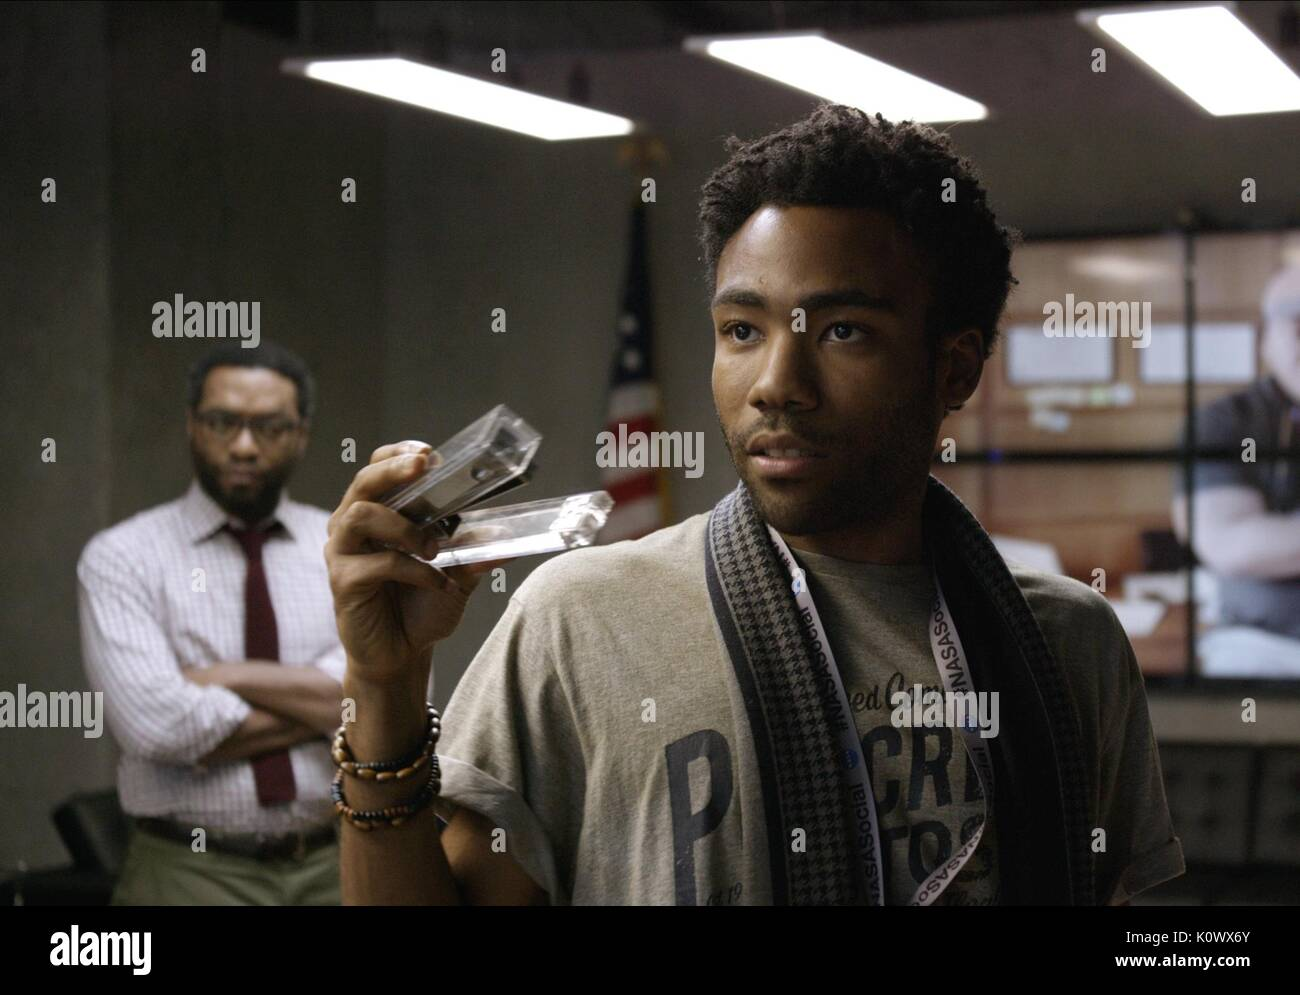 CHIWETEL EJIOFOR & DONALD GLOVER THE MARTIAN (2015) - Stock Image